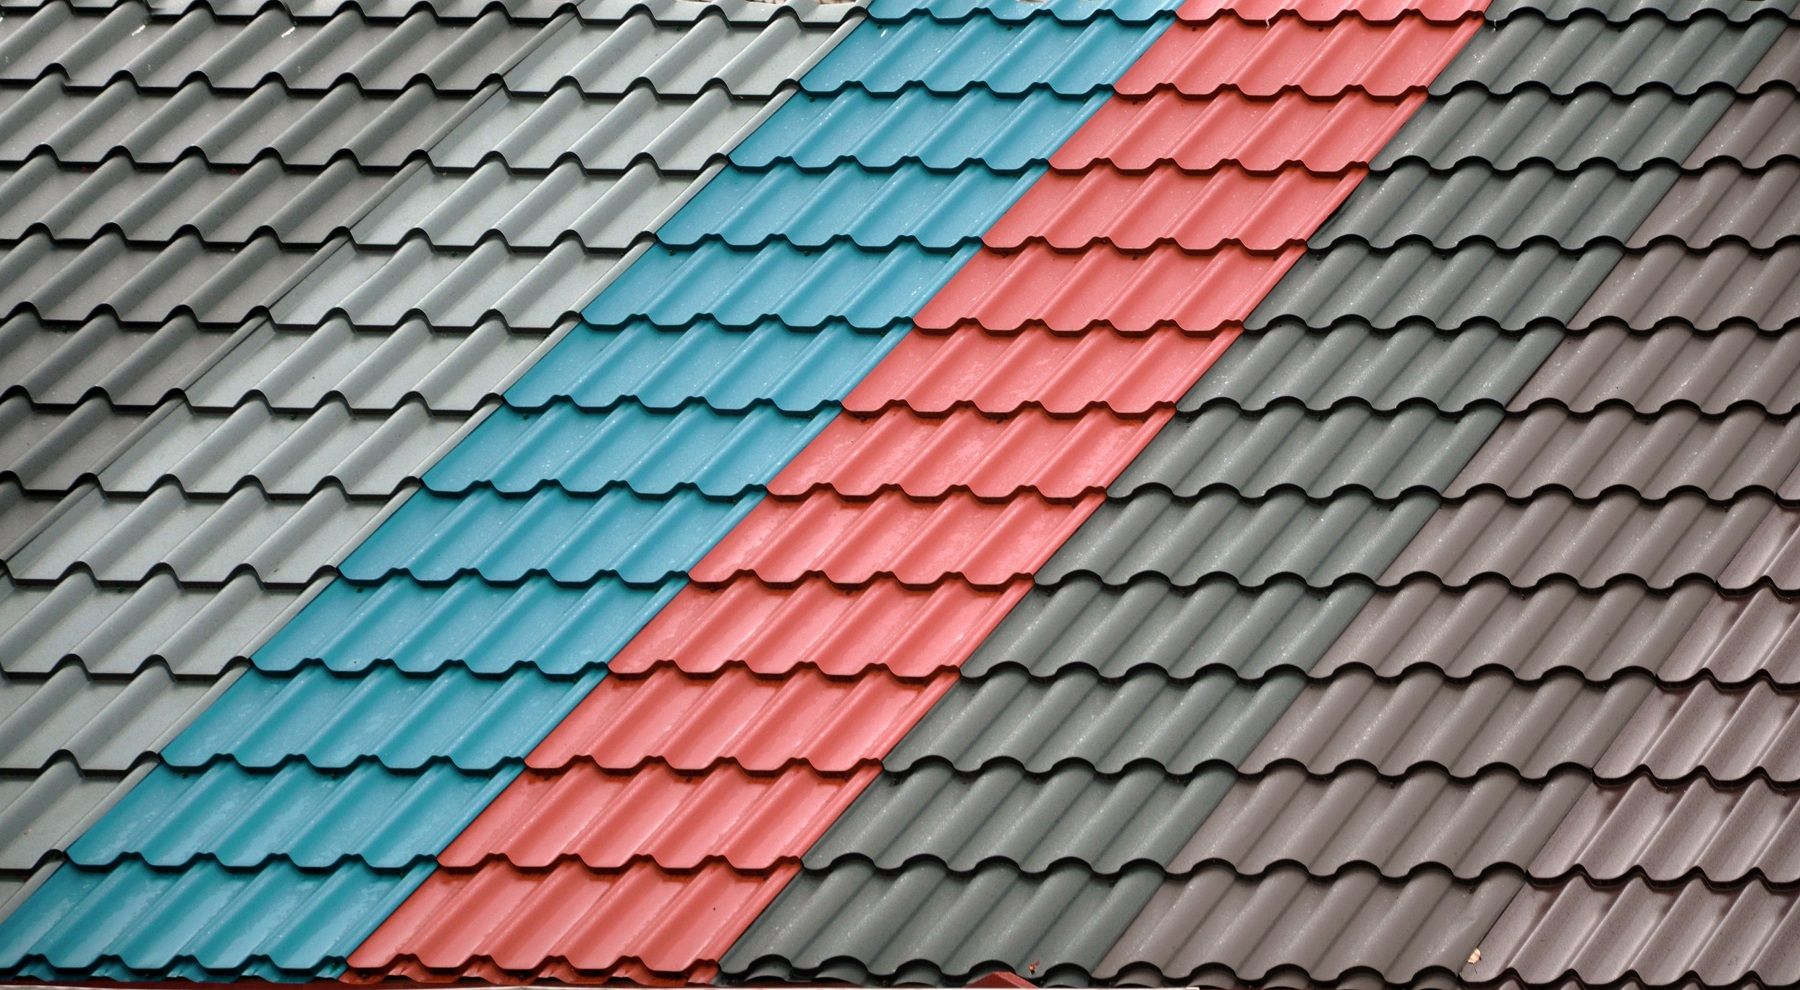 Roofing Maintenance Service What To Get From The Roofers Types Of Roofing Materials Concrete Roof Tiles Roof Repair